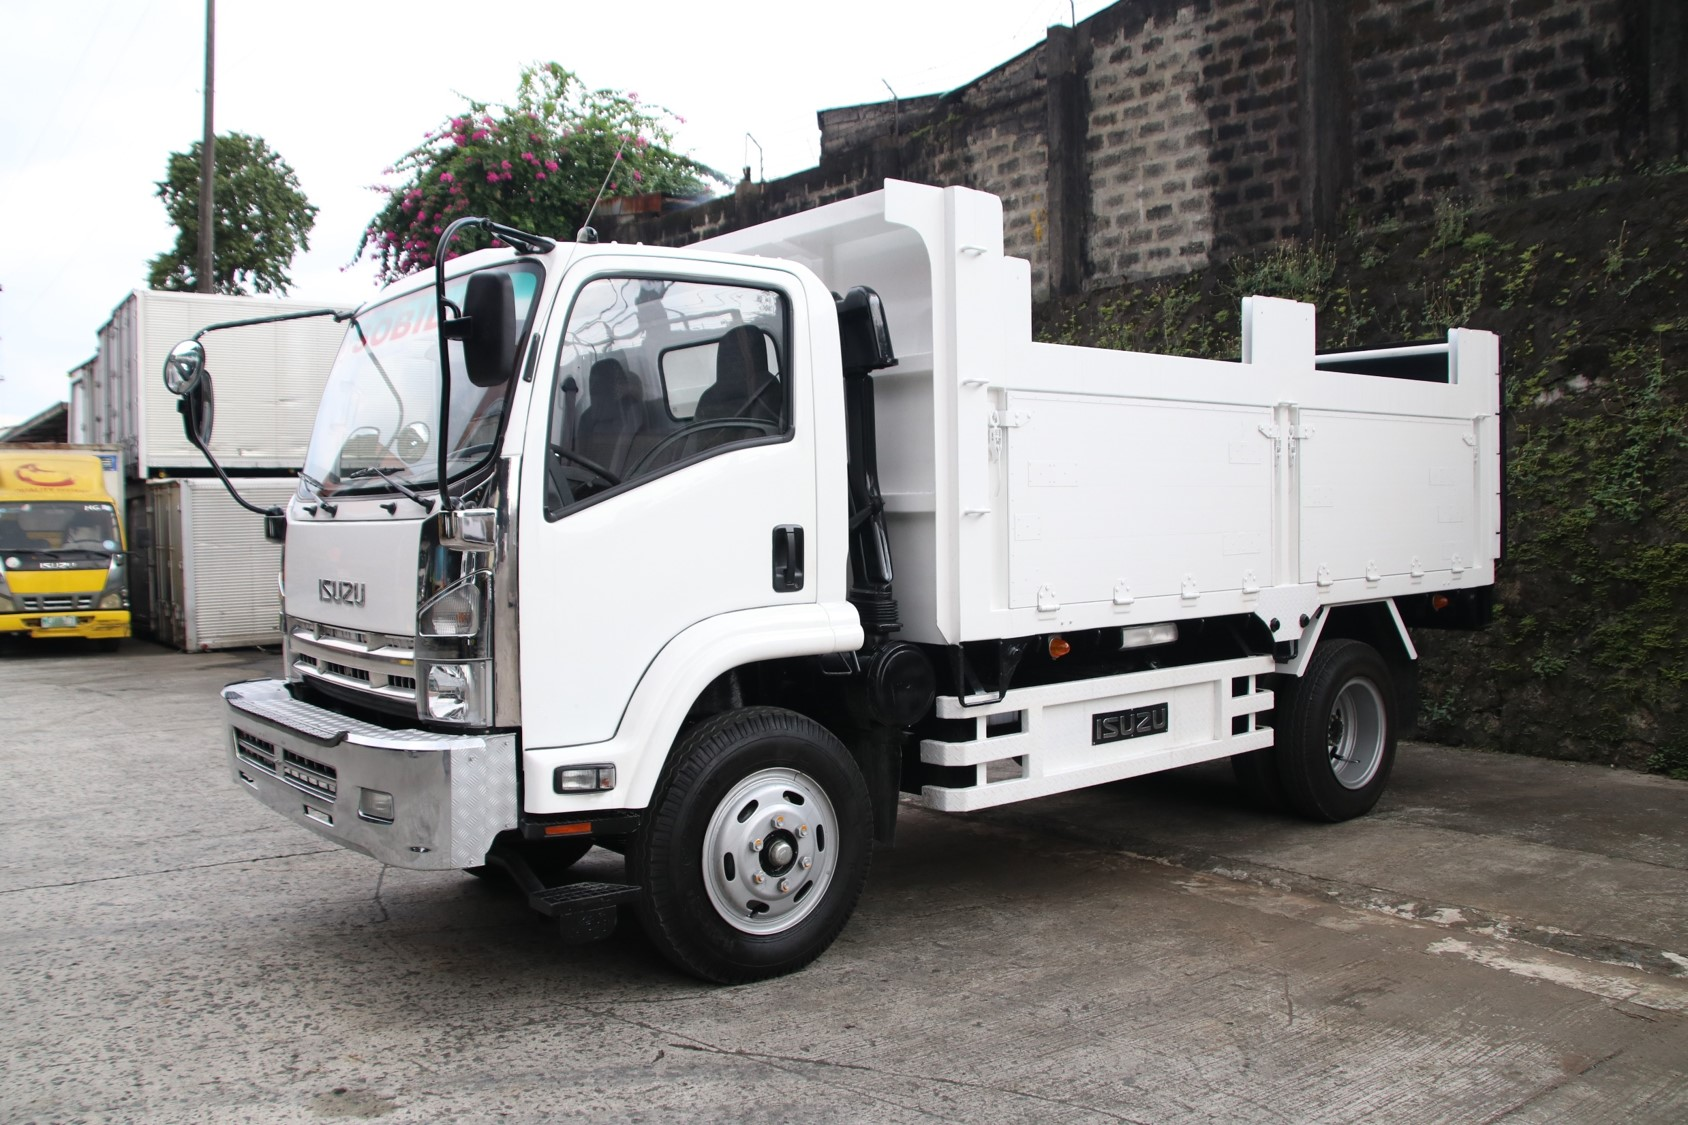 Sobida Isuzu FRR Forward 6wheel dump truck photo